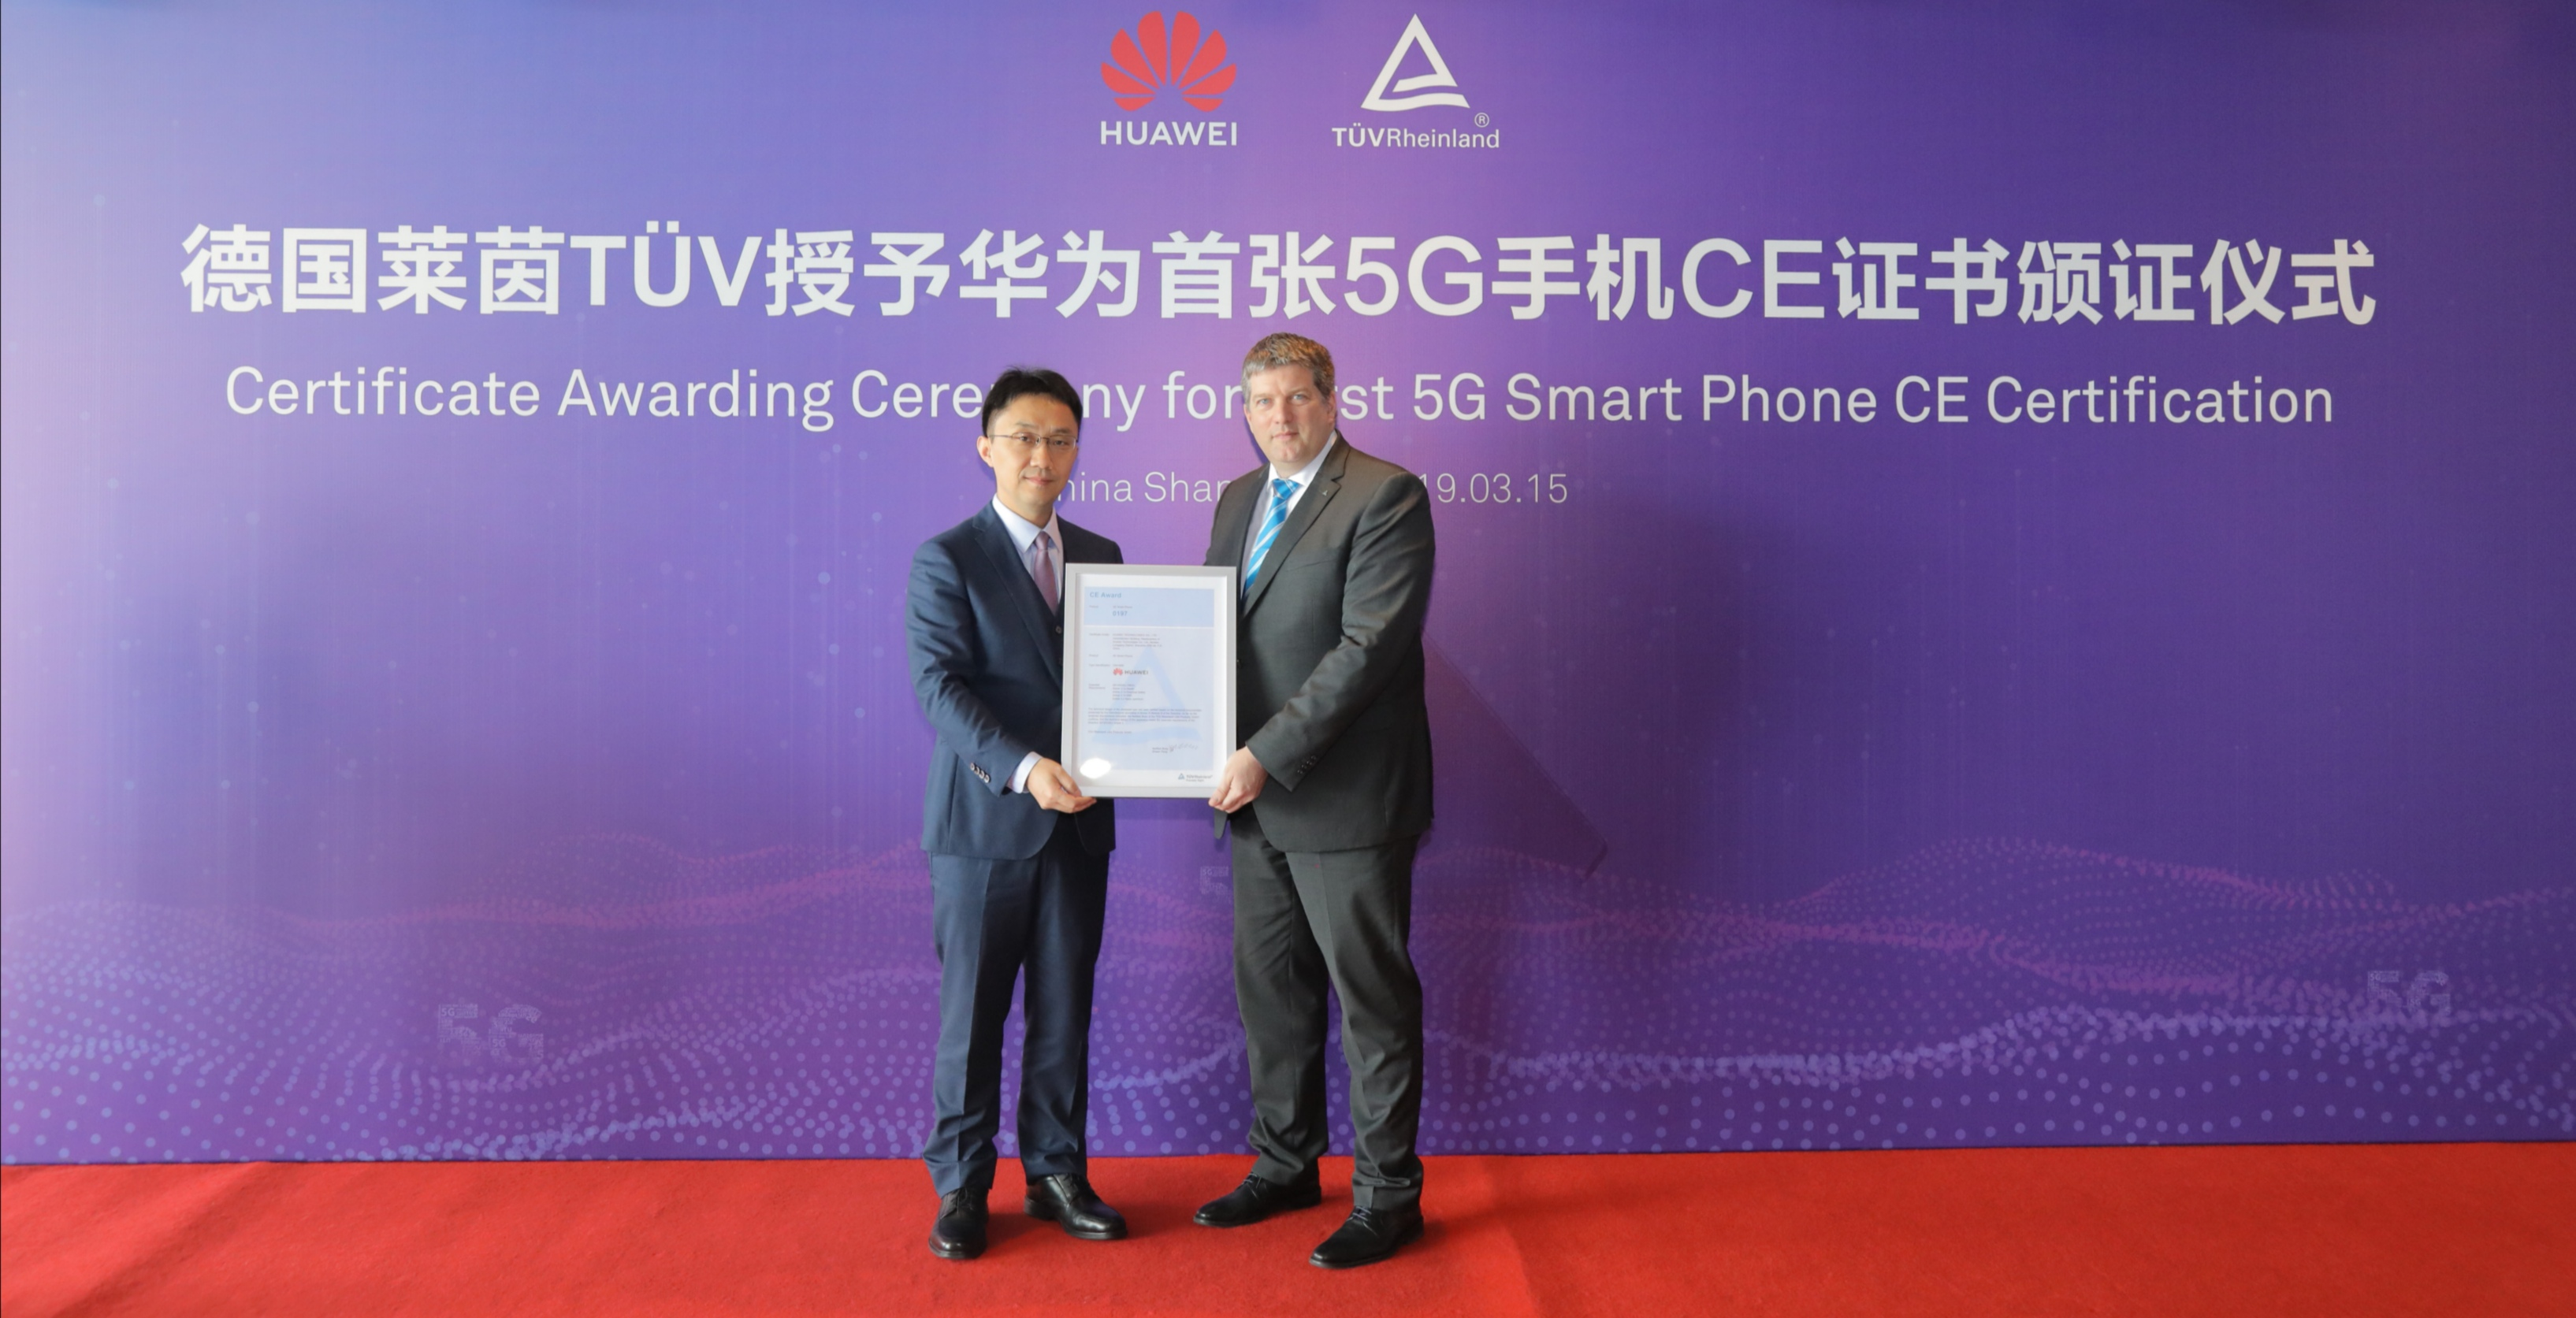 HUAWEI Mate X receives the first 5G CE certificate awarded by TÜV Rheinland